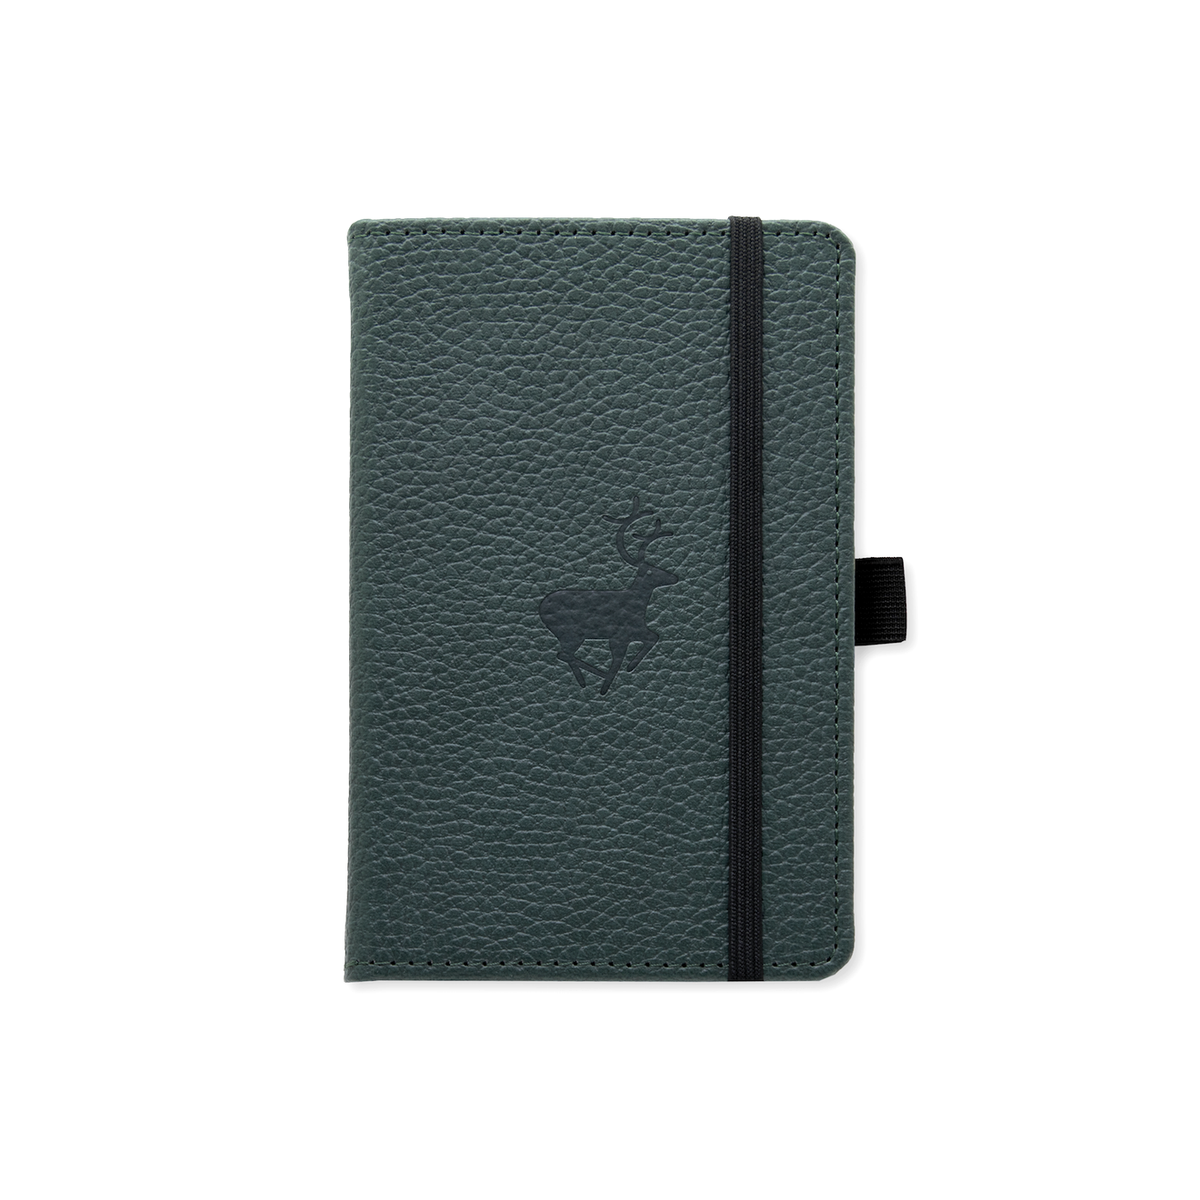 POCKET DOT GRID NOTEBOOK - WILDLIFE COLLECTION - GREEN DEER